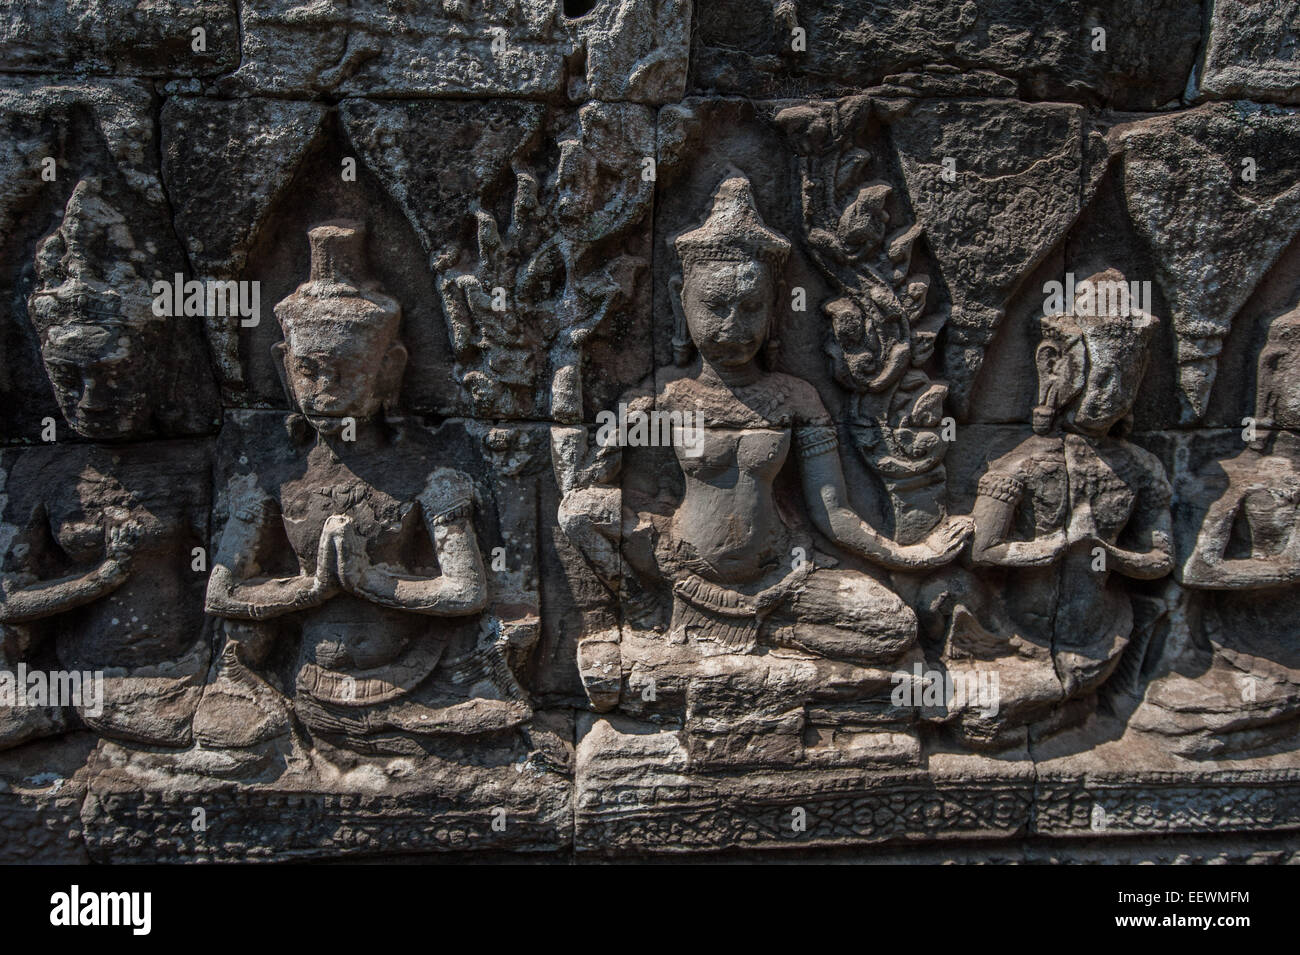 Carved stone figures on the wall at bayon temple angkor